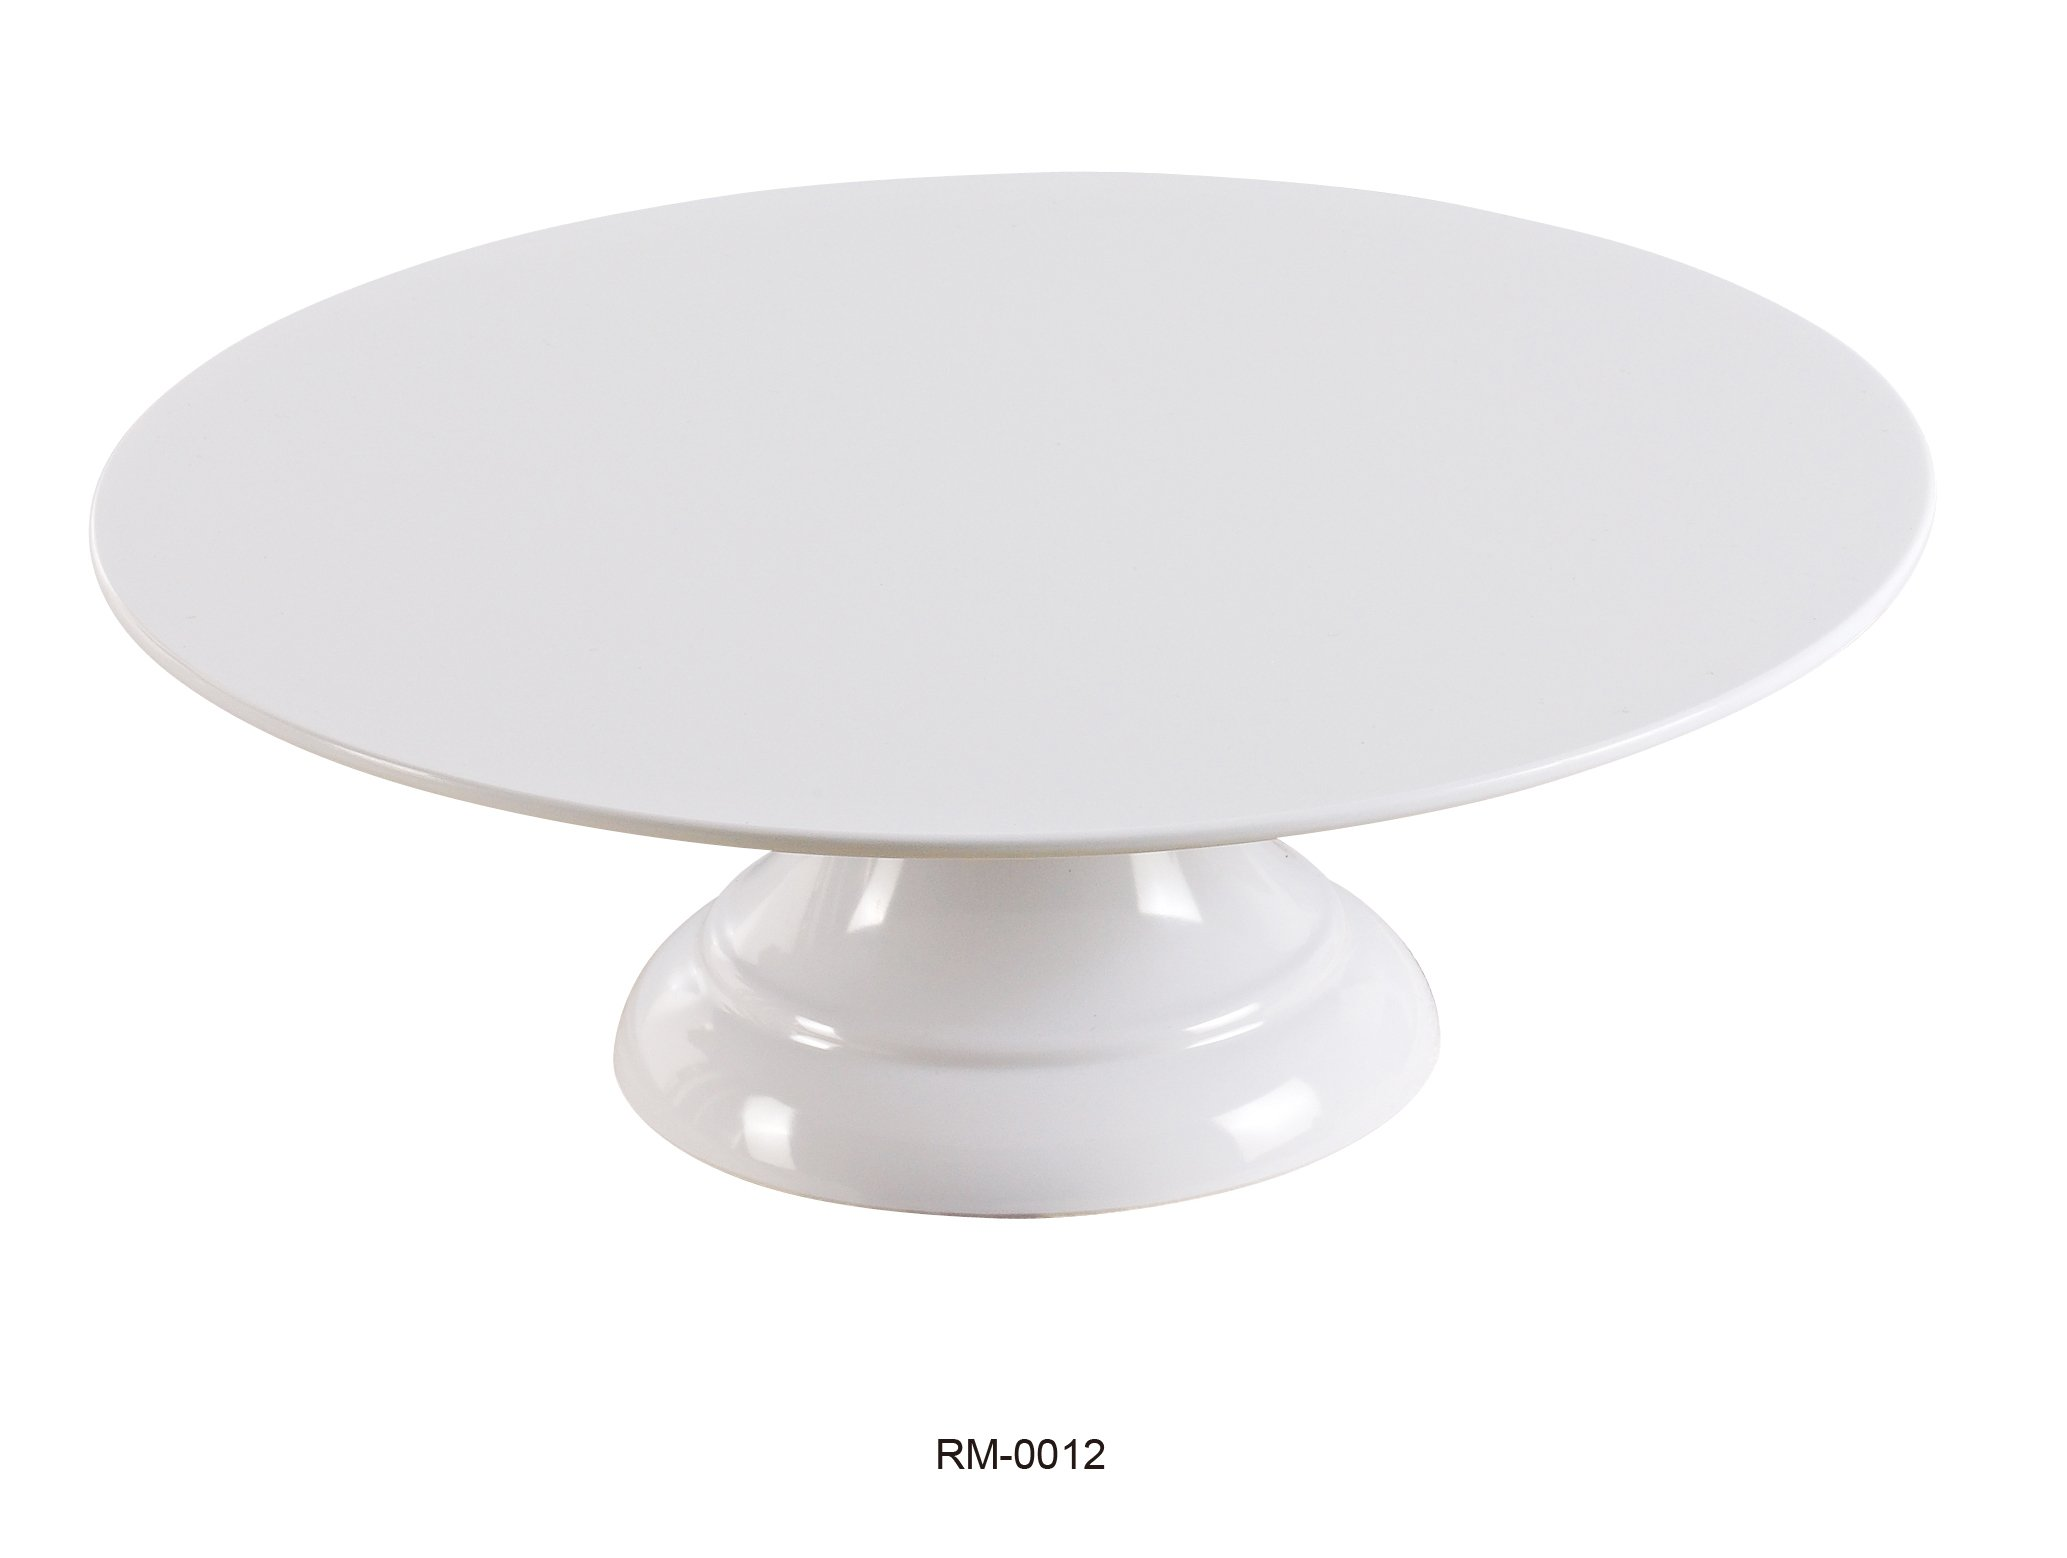 Yanco RM-0012 Rome Cake Stand, 12'' Diameter, 4.125'' Height, Melamine, White Color, Pack of 6